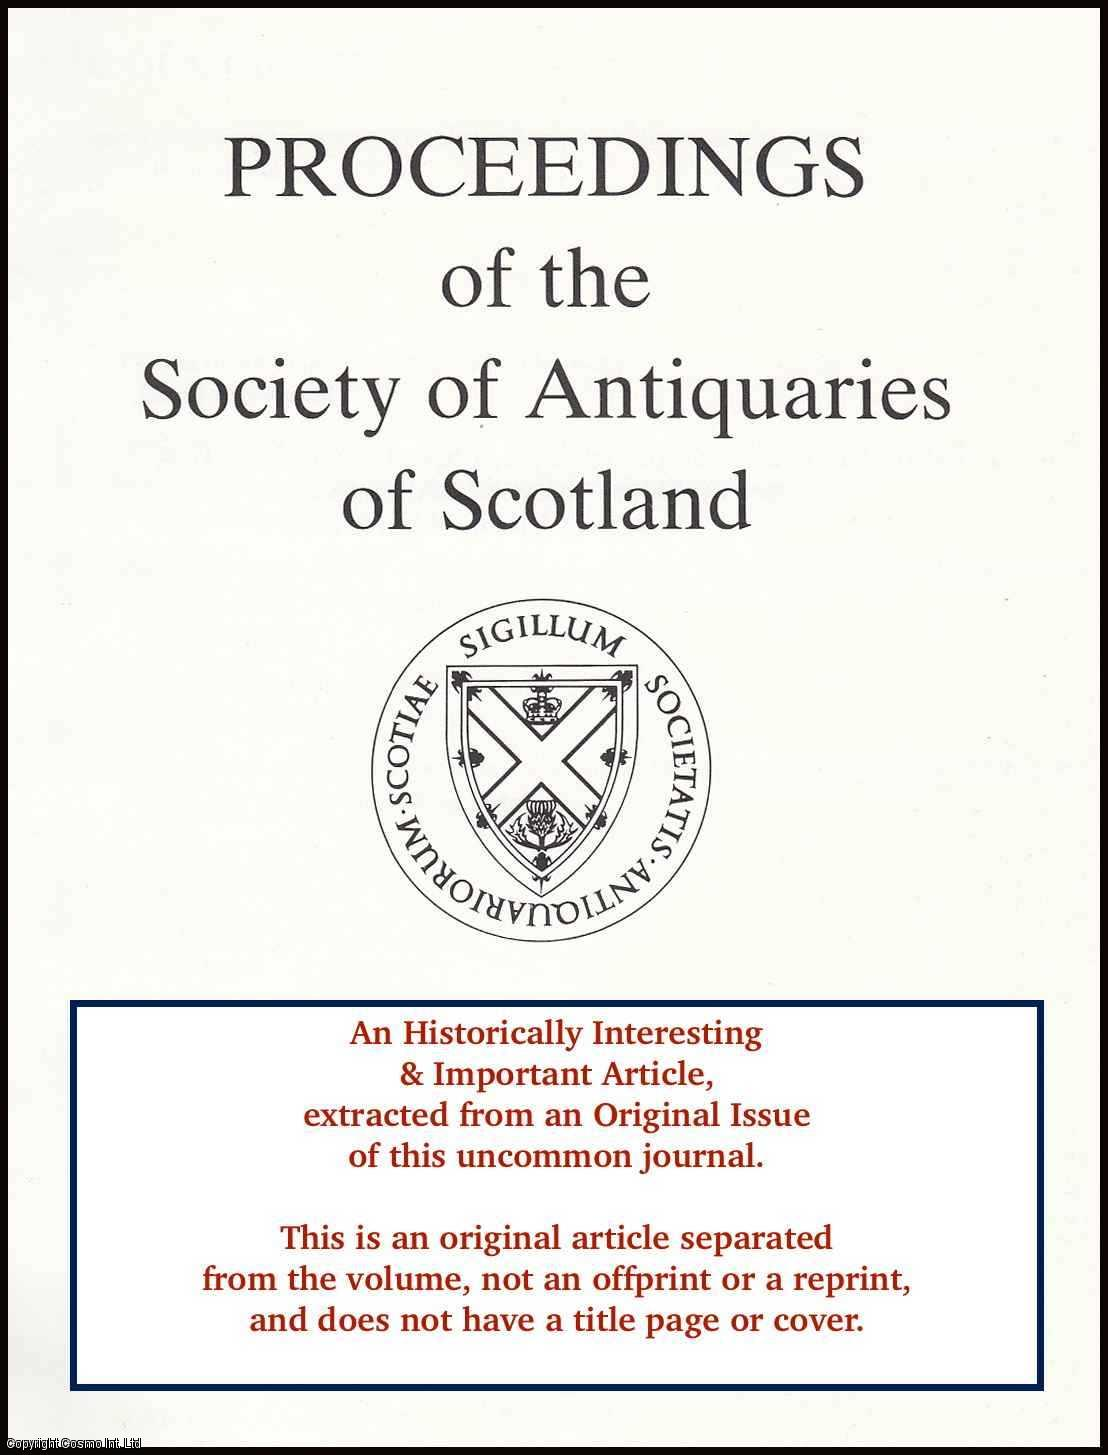 LAING & W. NORMAN ROBERTSON, LLOYD R. - Notes on Scottish Medieval Pottery. An original article from the Proceedings of the Society of Antiquaries of Scotland, 1973.